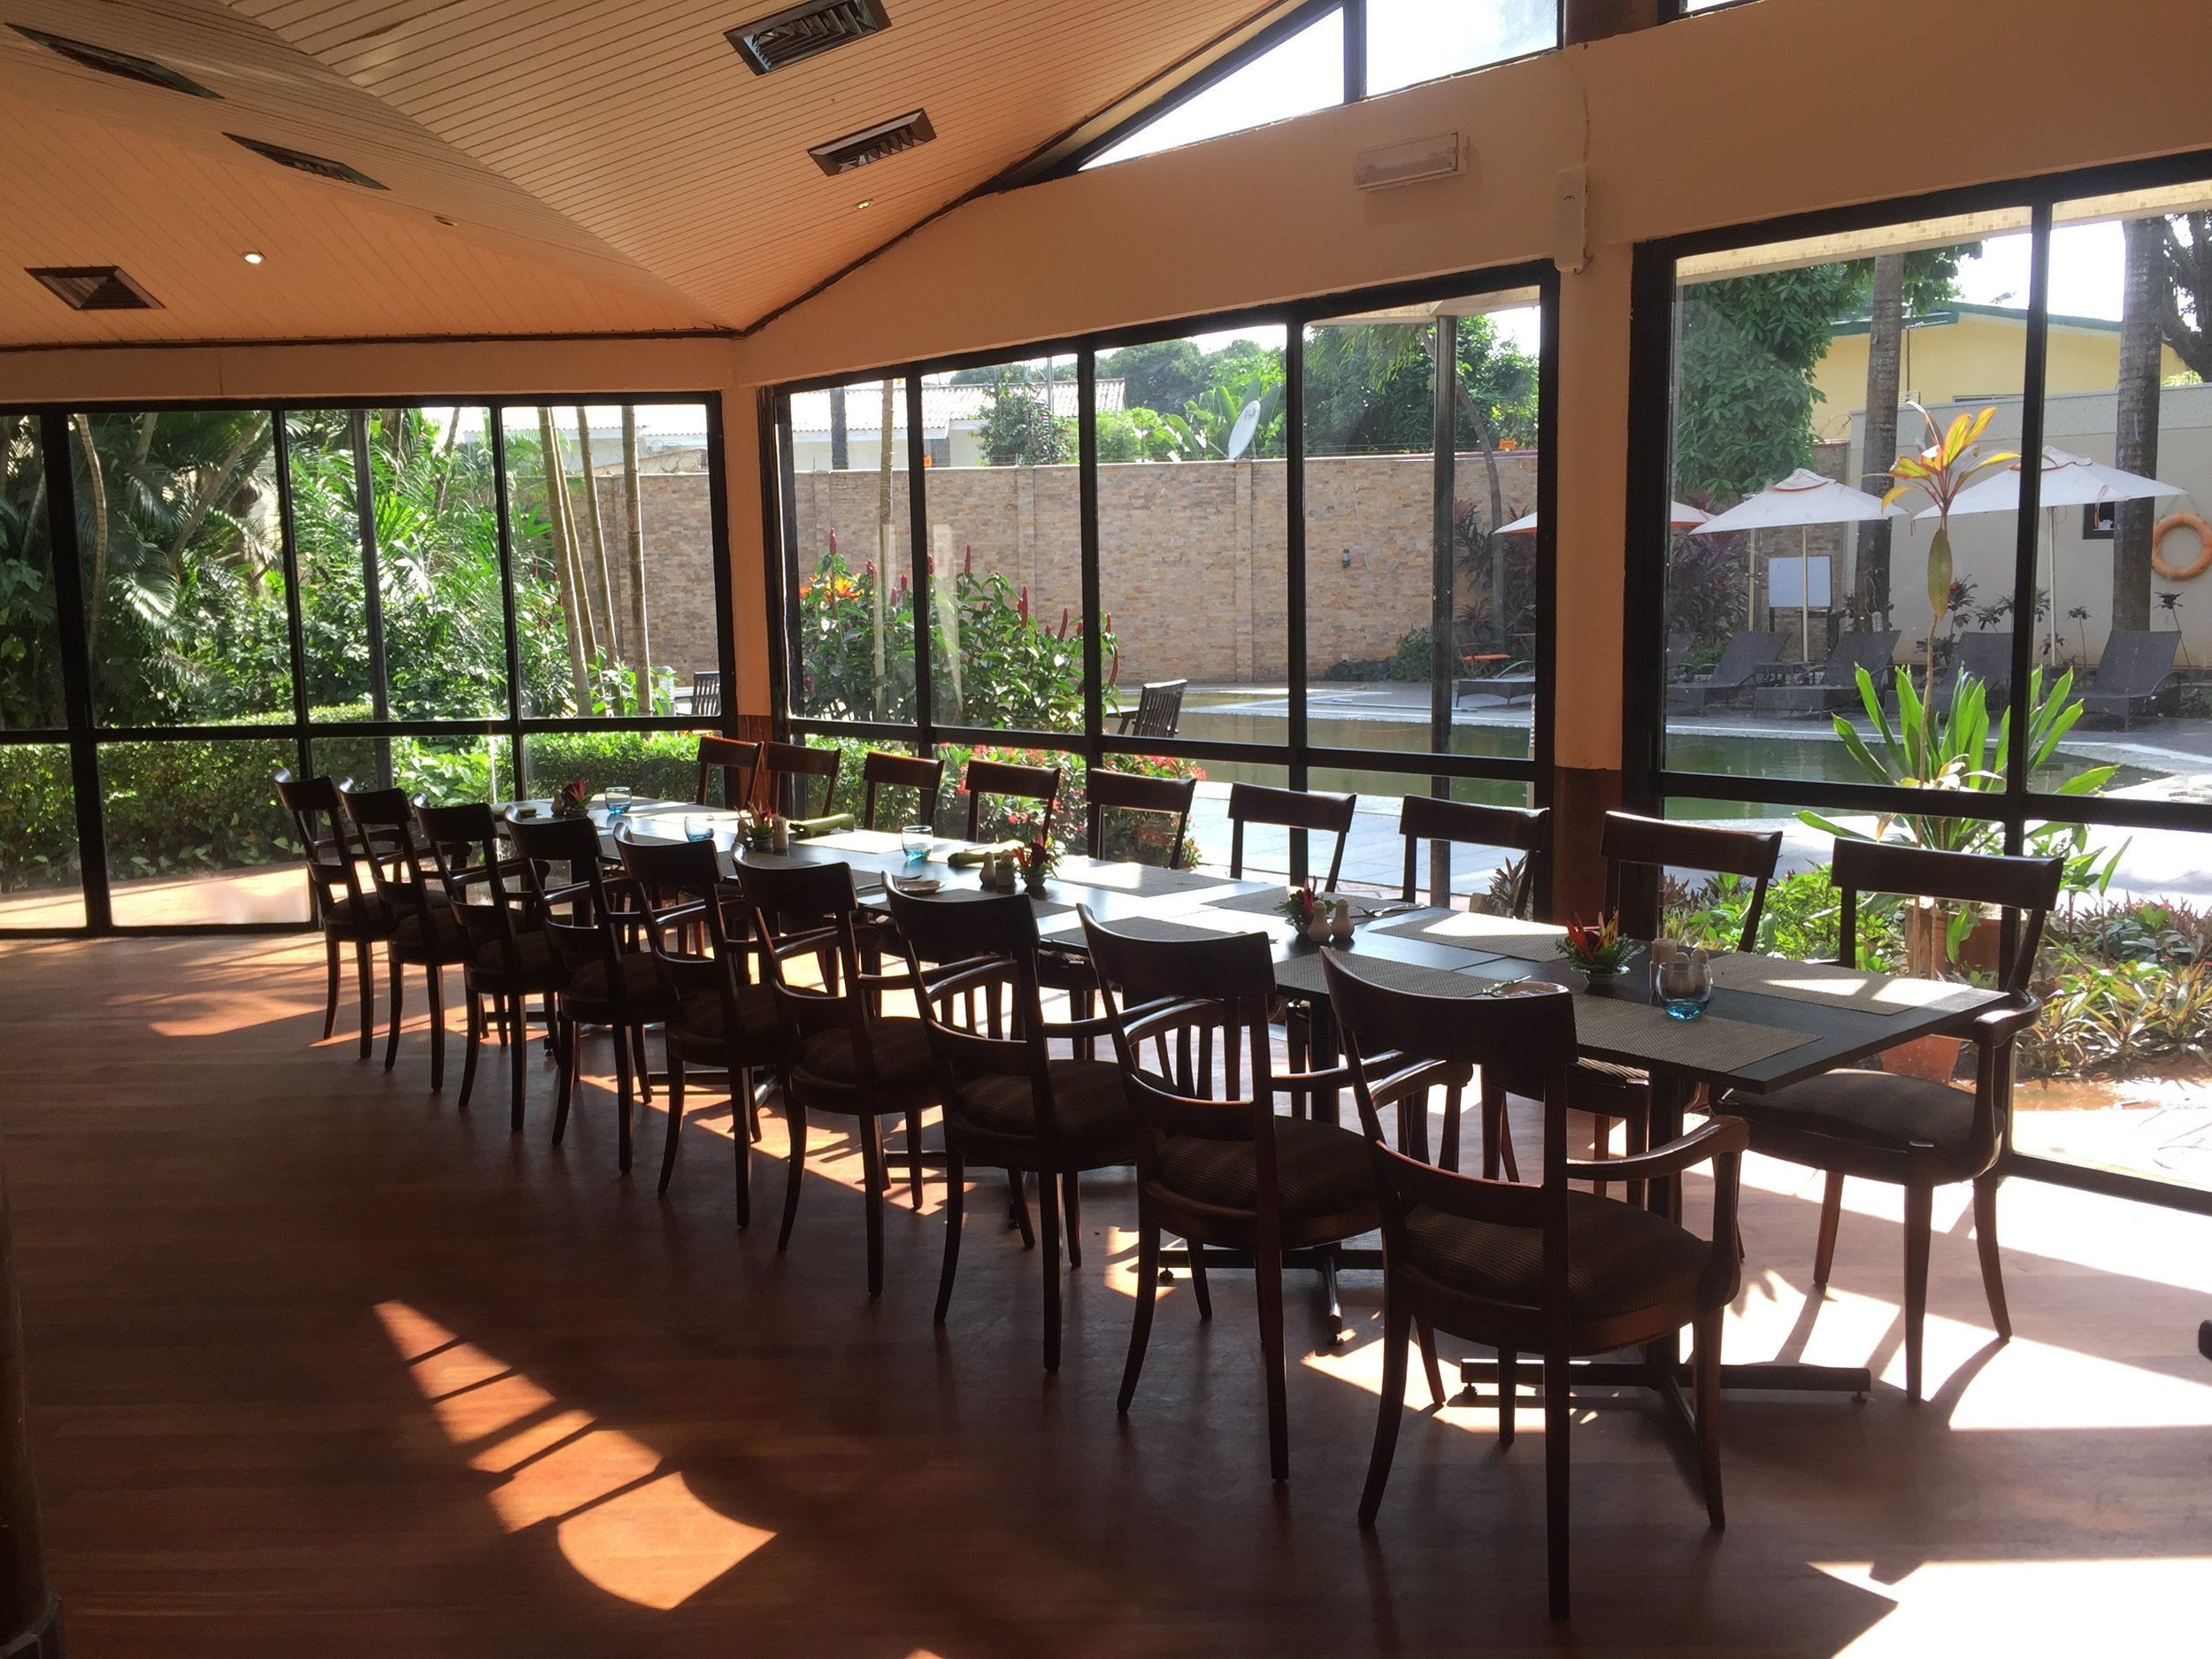 Such a sight. The beautiful setting of the restaurant. This area is perfect for group outings like birthdays etc